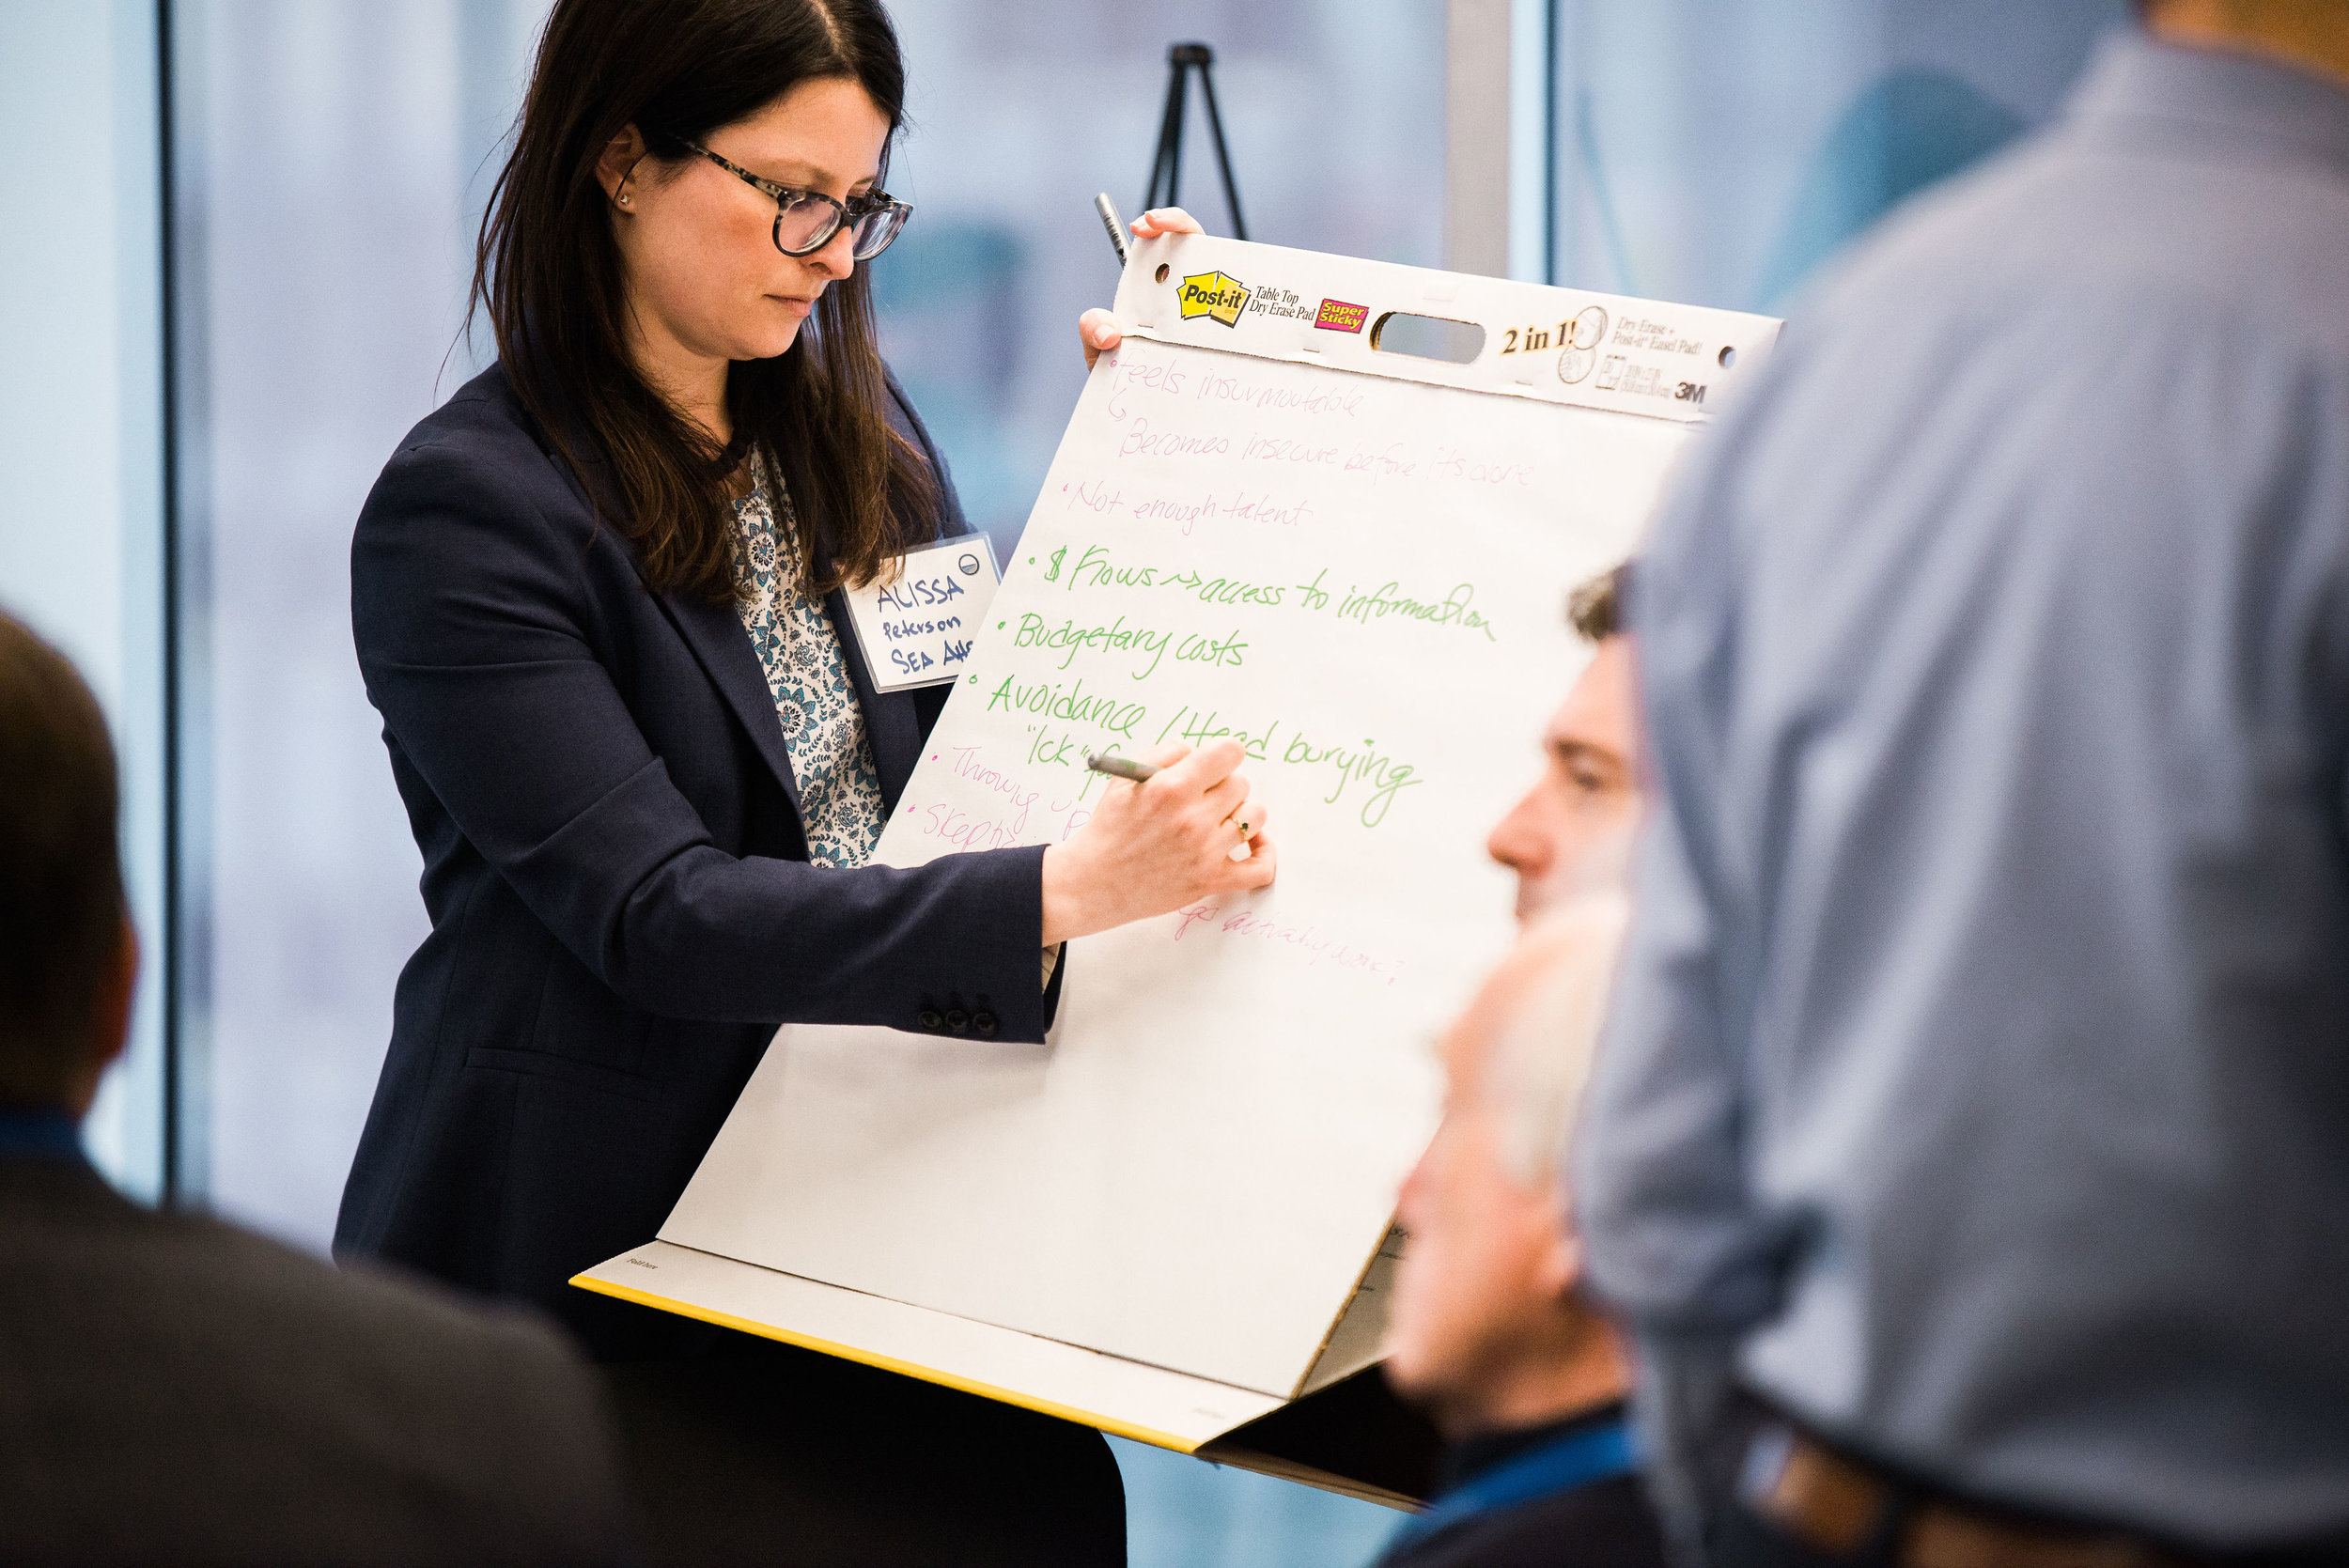 Designed and lead a co-creation workshop for the Maritime Industry with SeaAhead